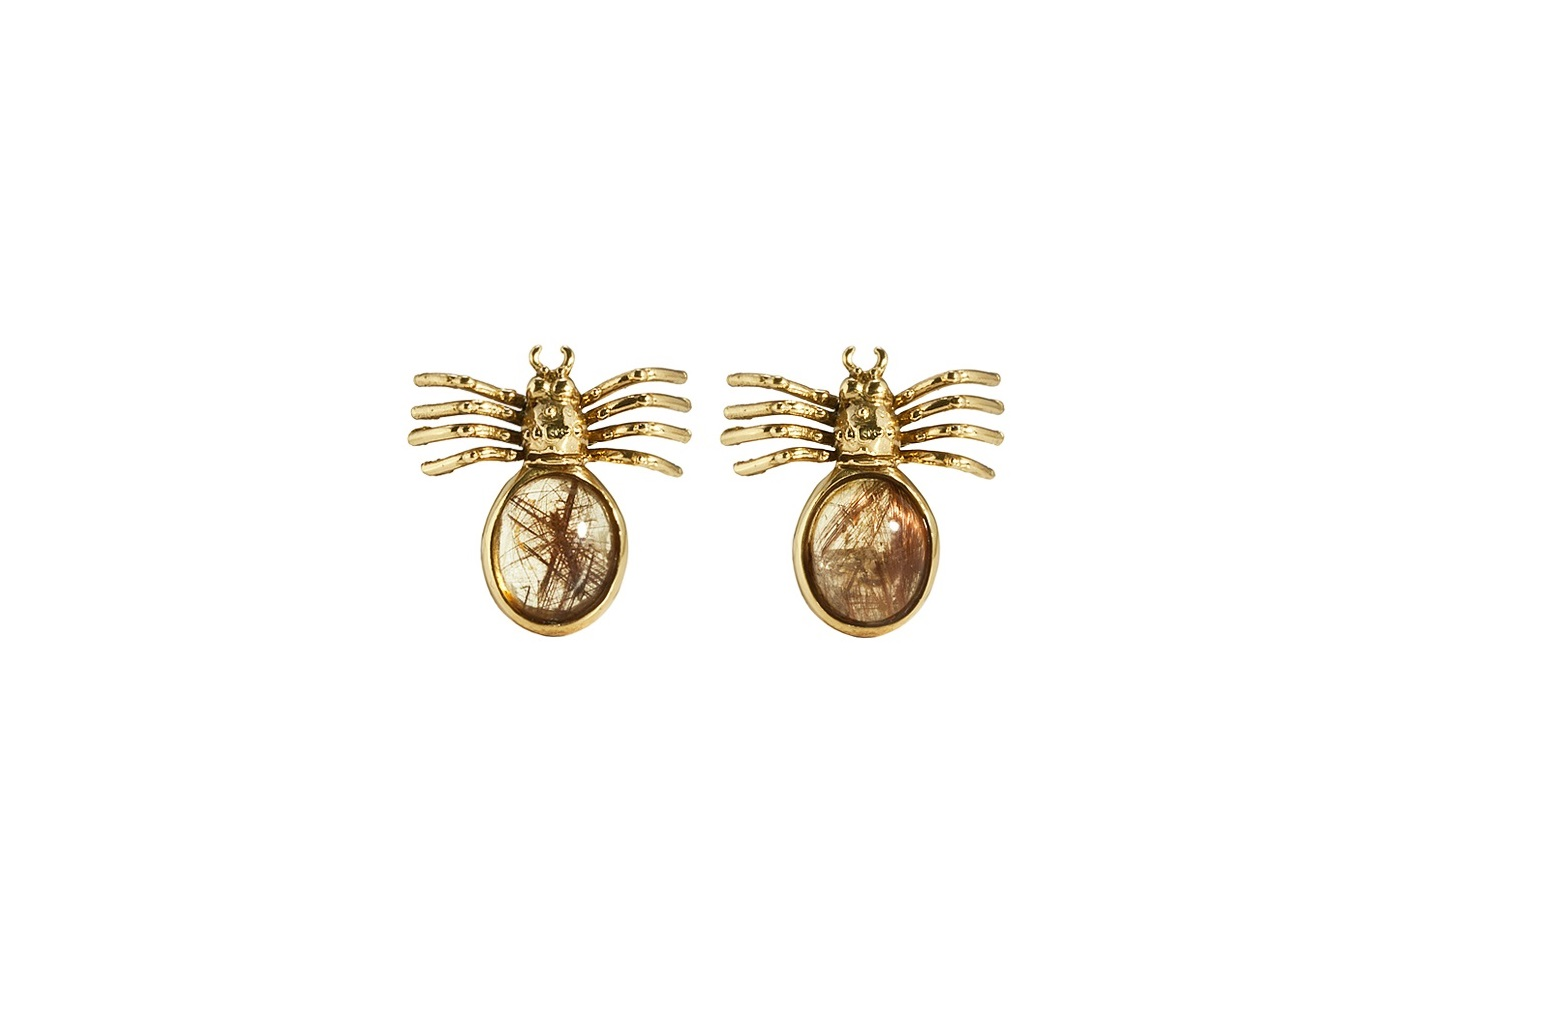 Spider bronze earrings with oval rutil quartz